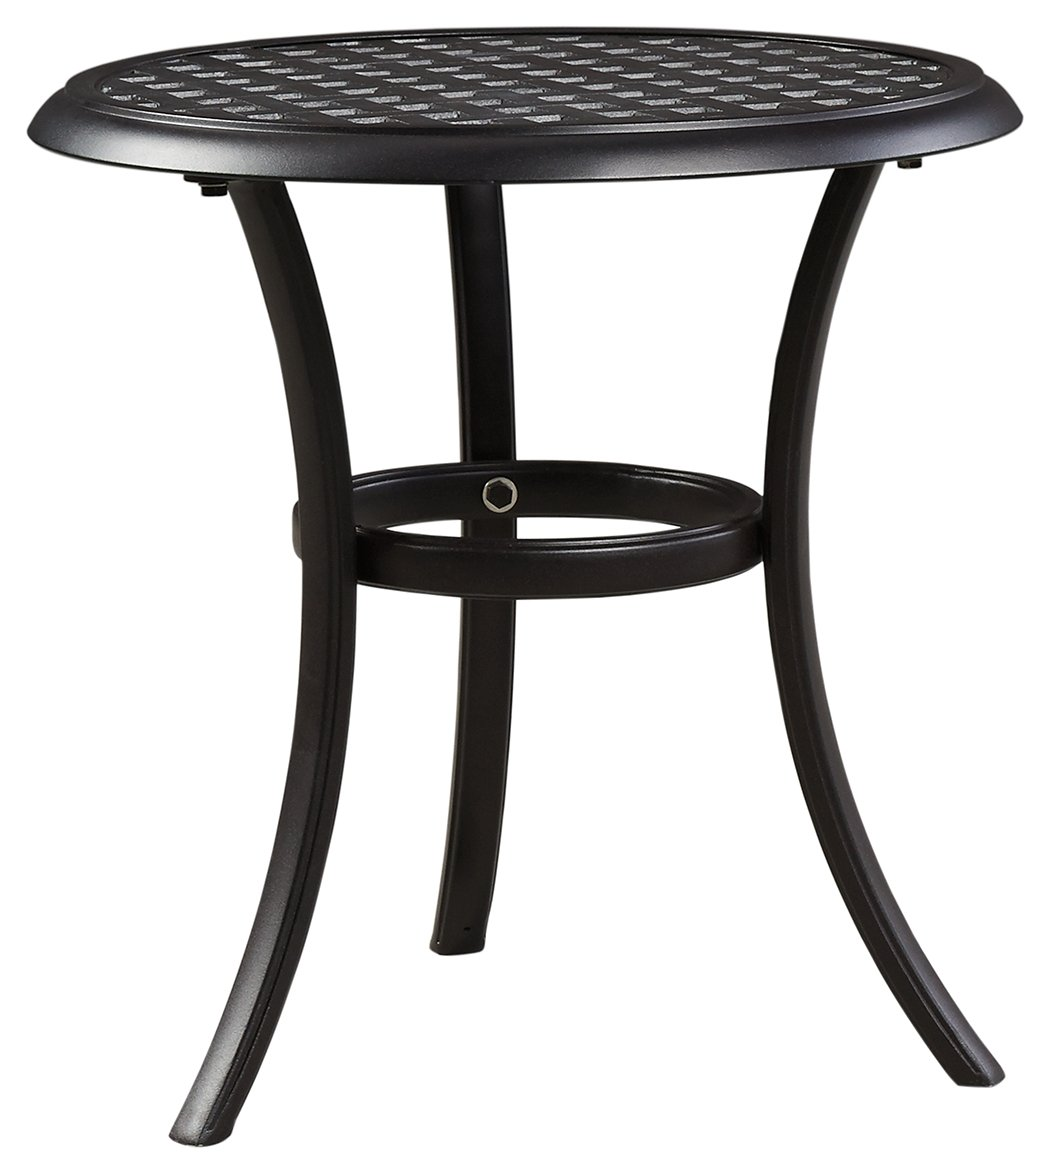 Bistro Tables : Online Shopping For Clothing, Shoes